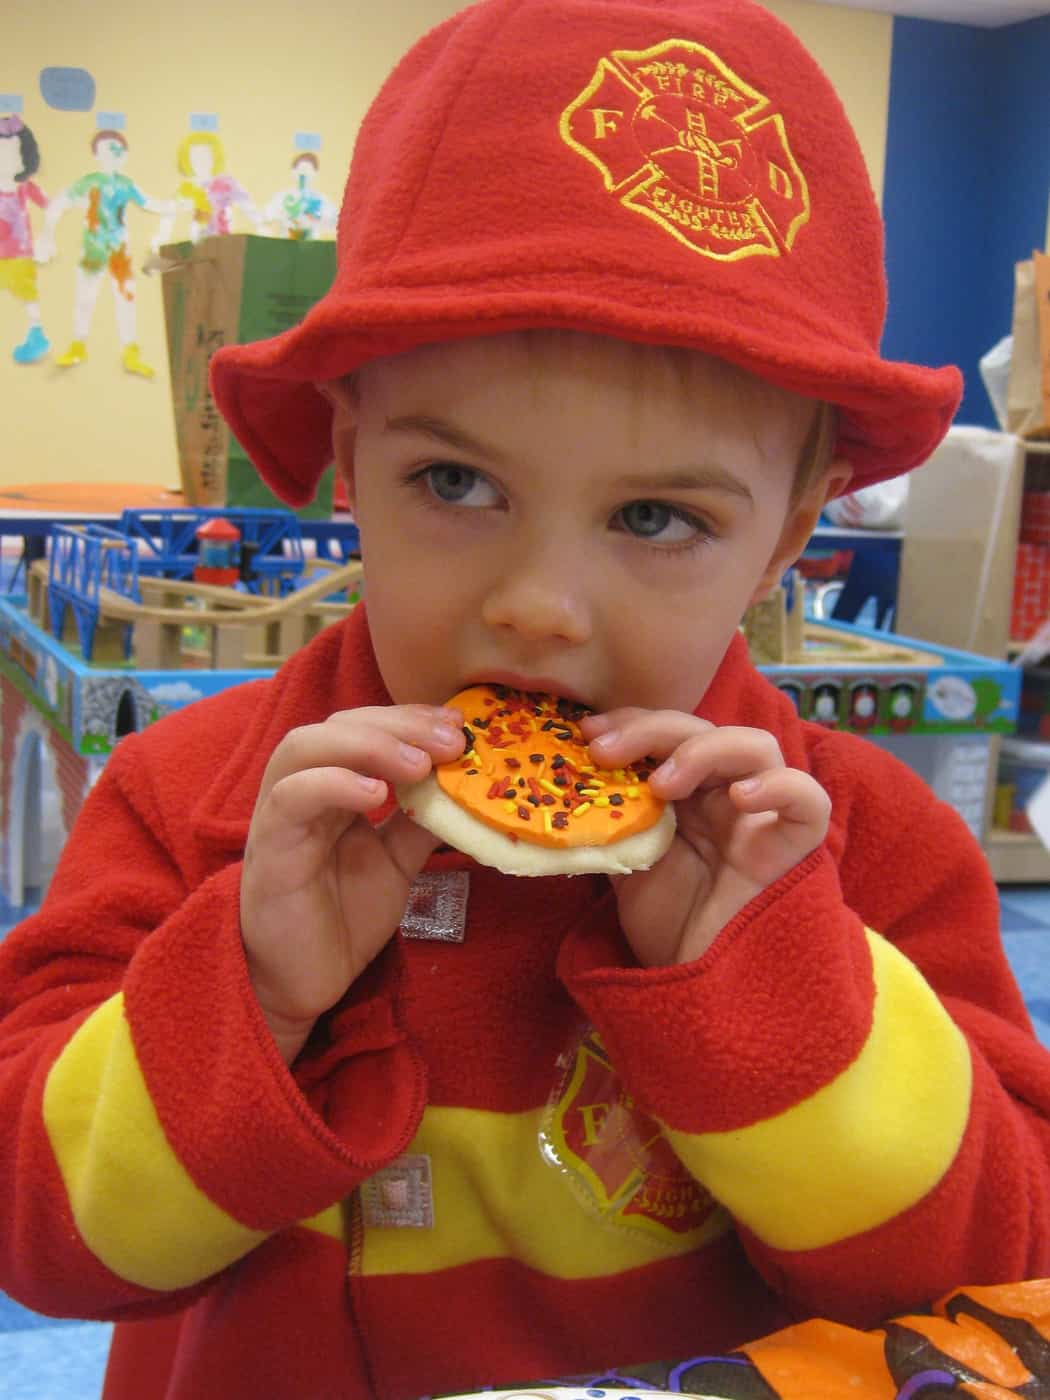 Happy Halloween From a Little Fireman!